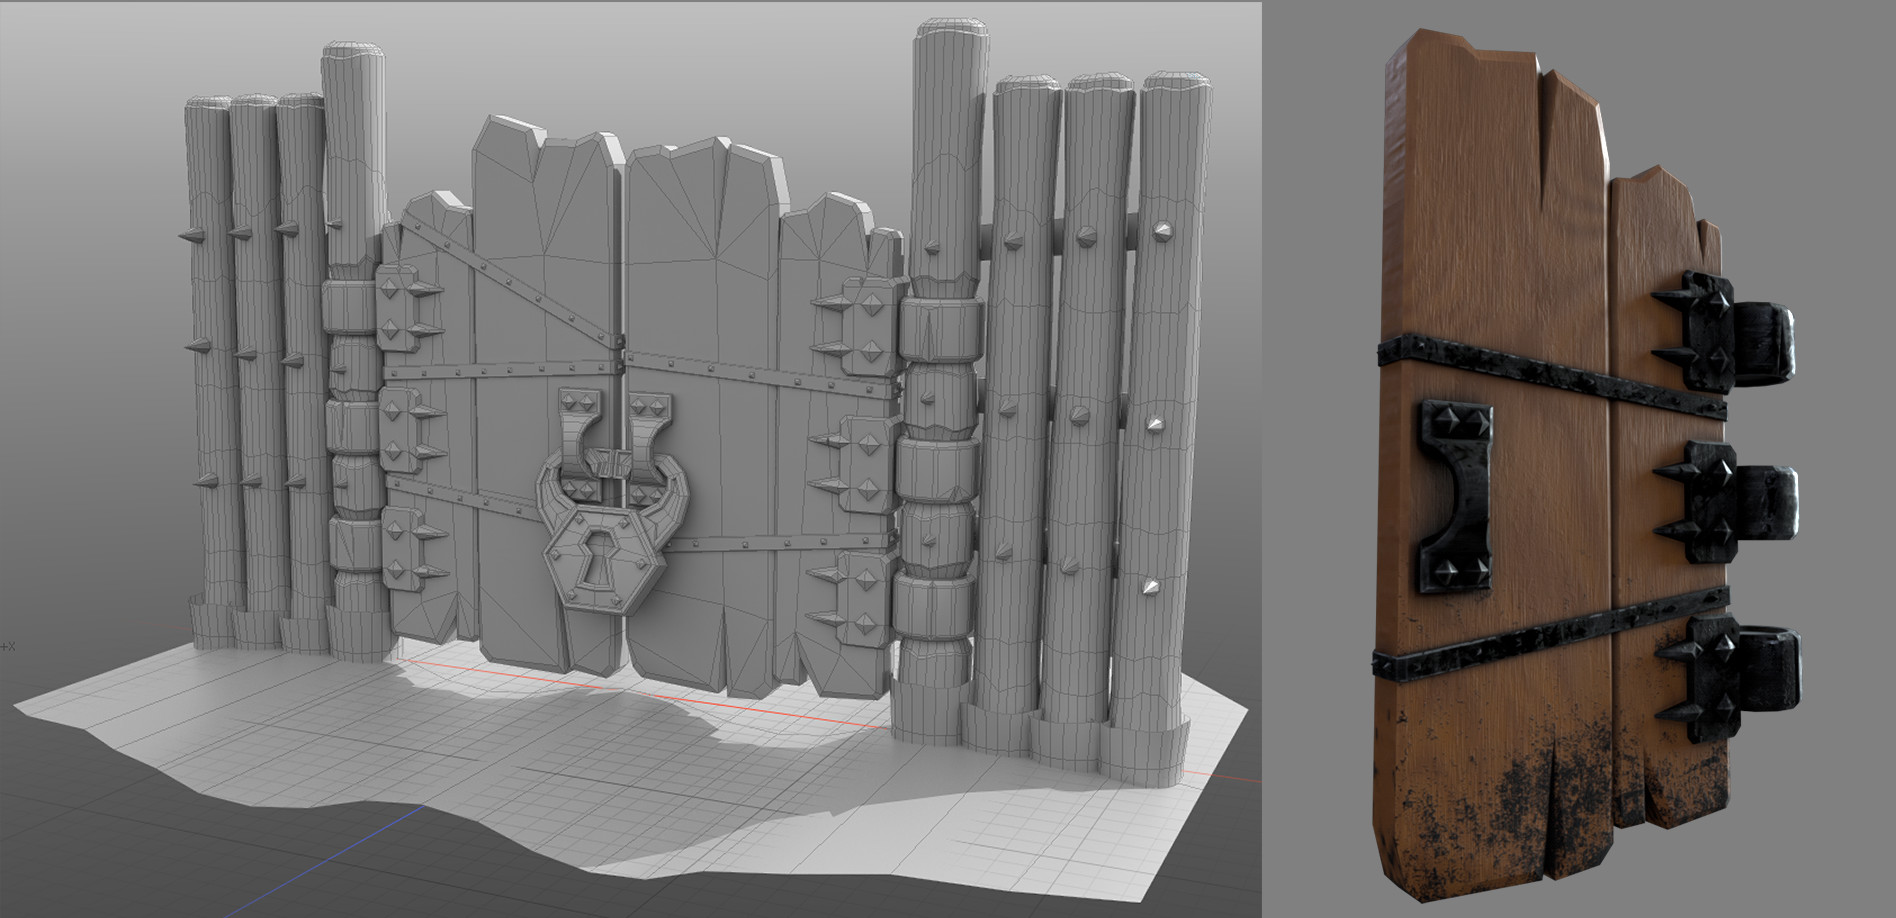 When I decided to texture this asset myself I needed to up the detail a bit. I also swapped out the ropes with metal strapping after doing some initial material tests. Modeled in Modo. Textured in Substance Designer.